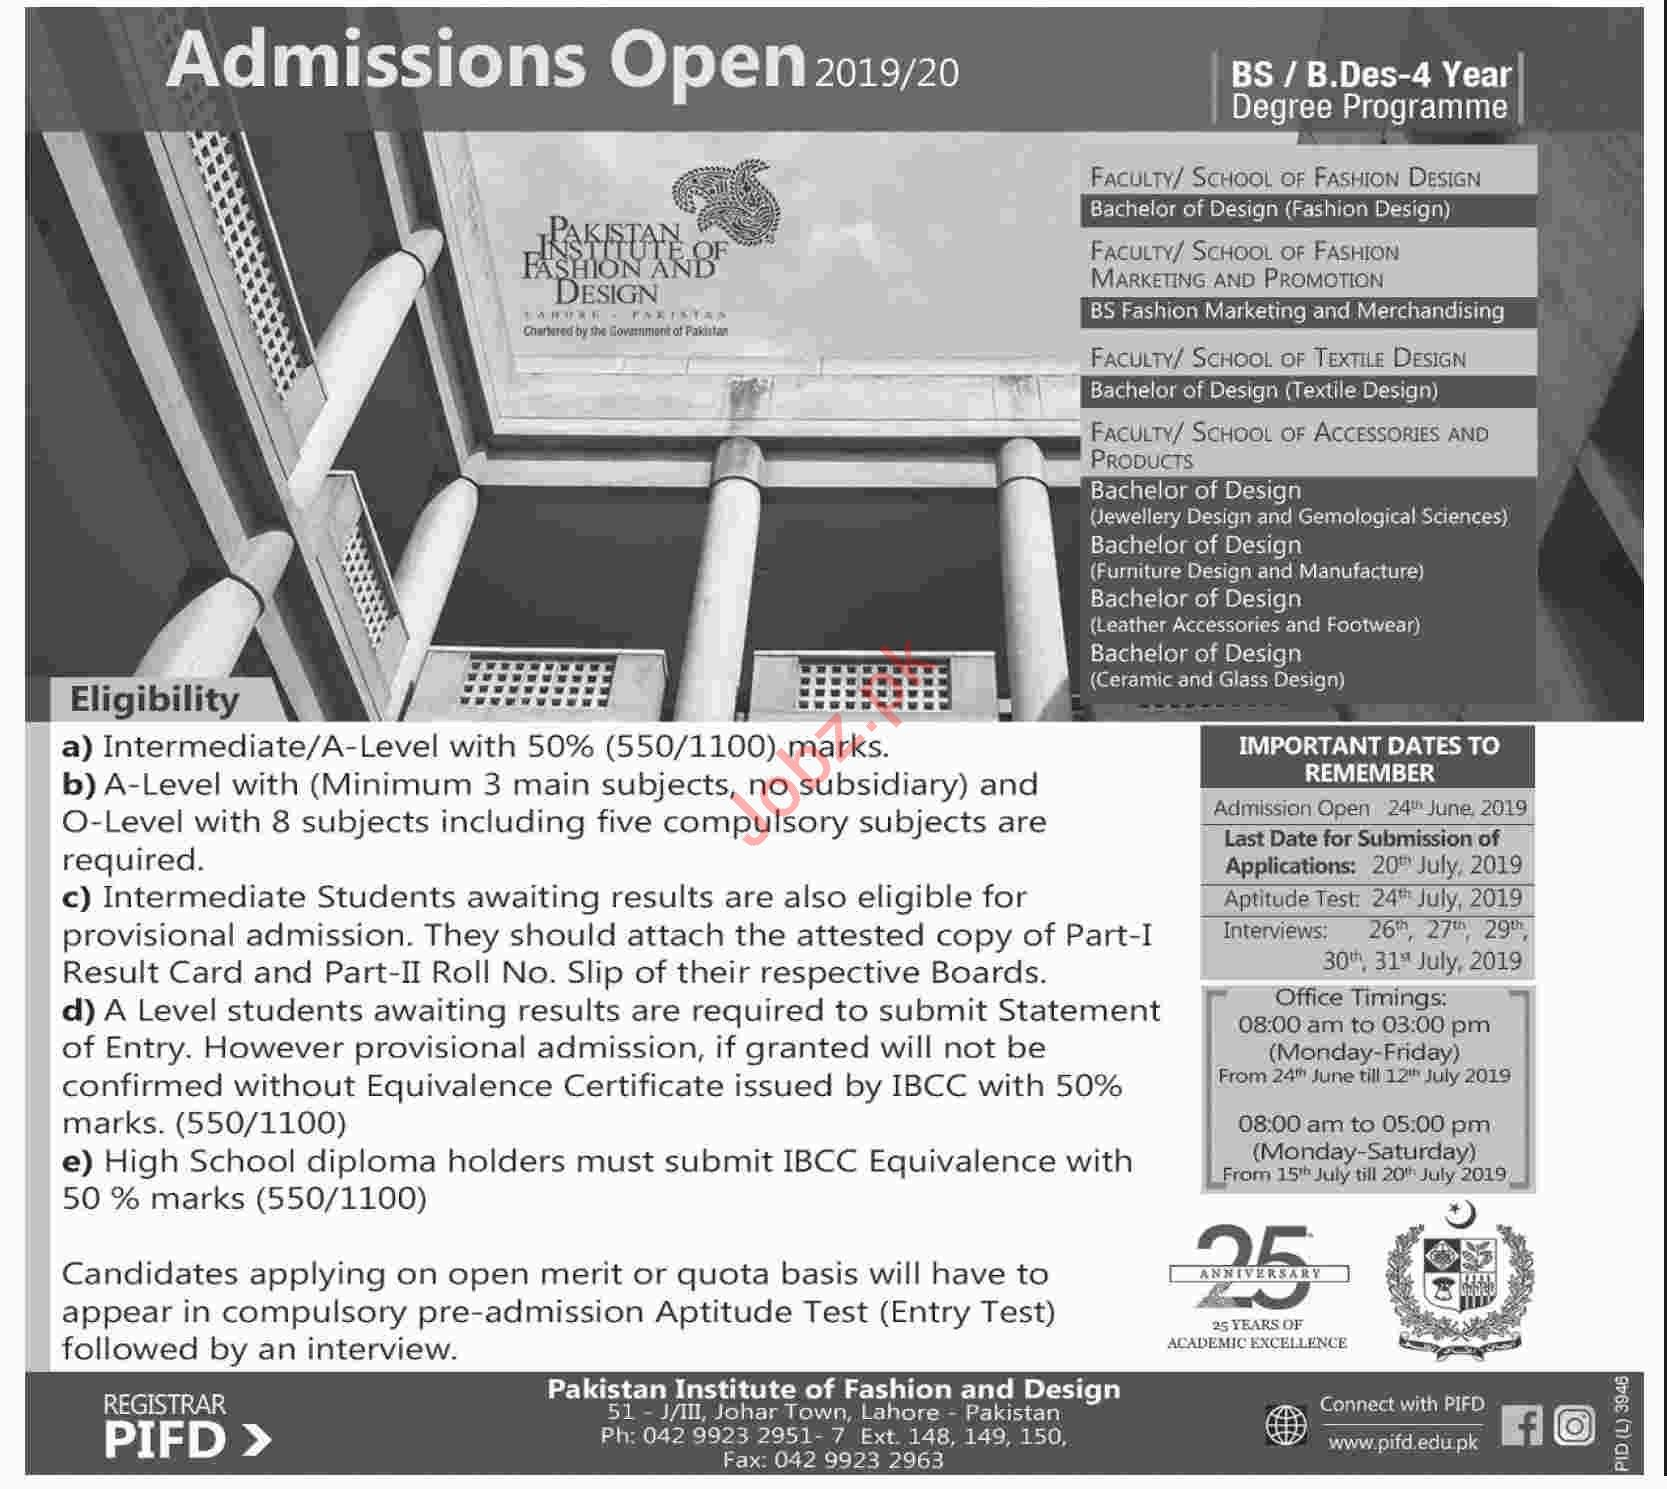 Pakistan Institute Of Fashion Design Pifd Admissions 2019 2020 Government Admissions University Arts Islamabad Islamabad Pakistan Jobz Pk